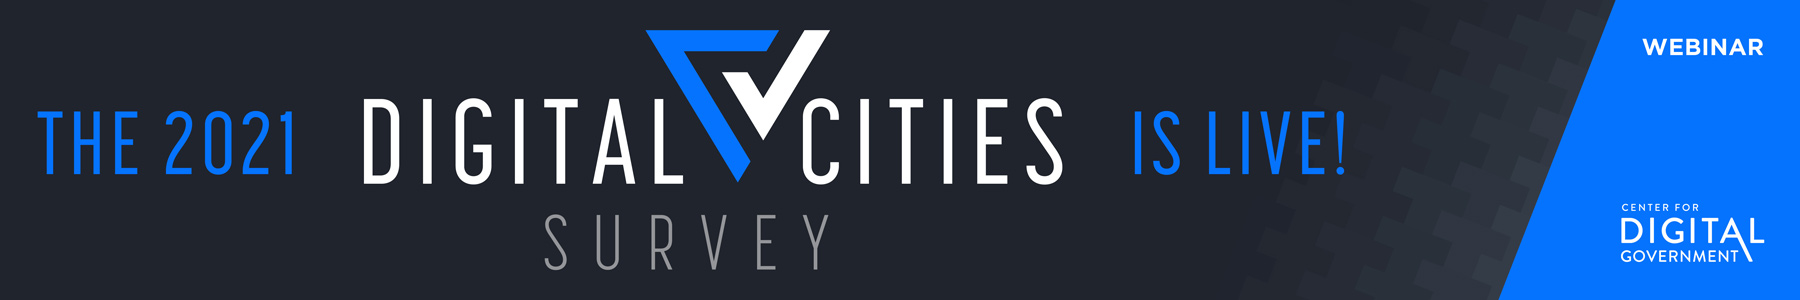 The 2021 Digital Cities Survey is Live!